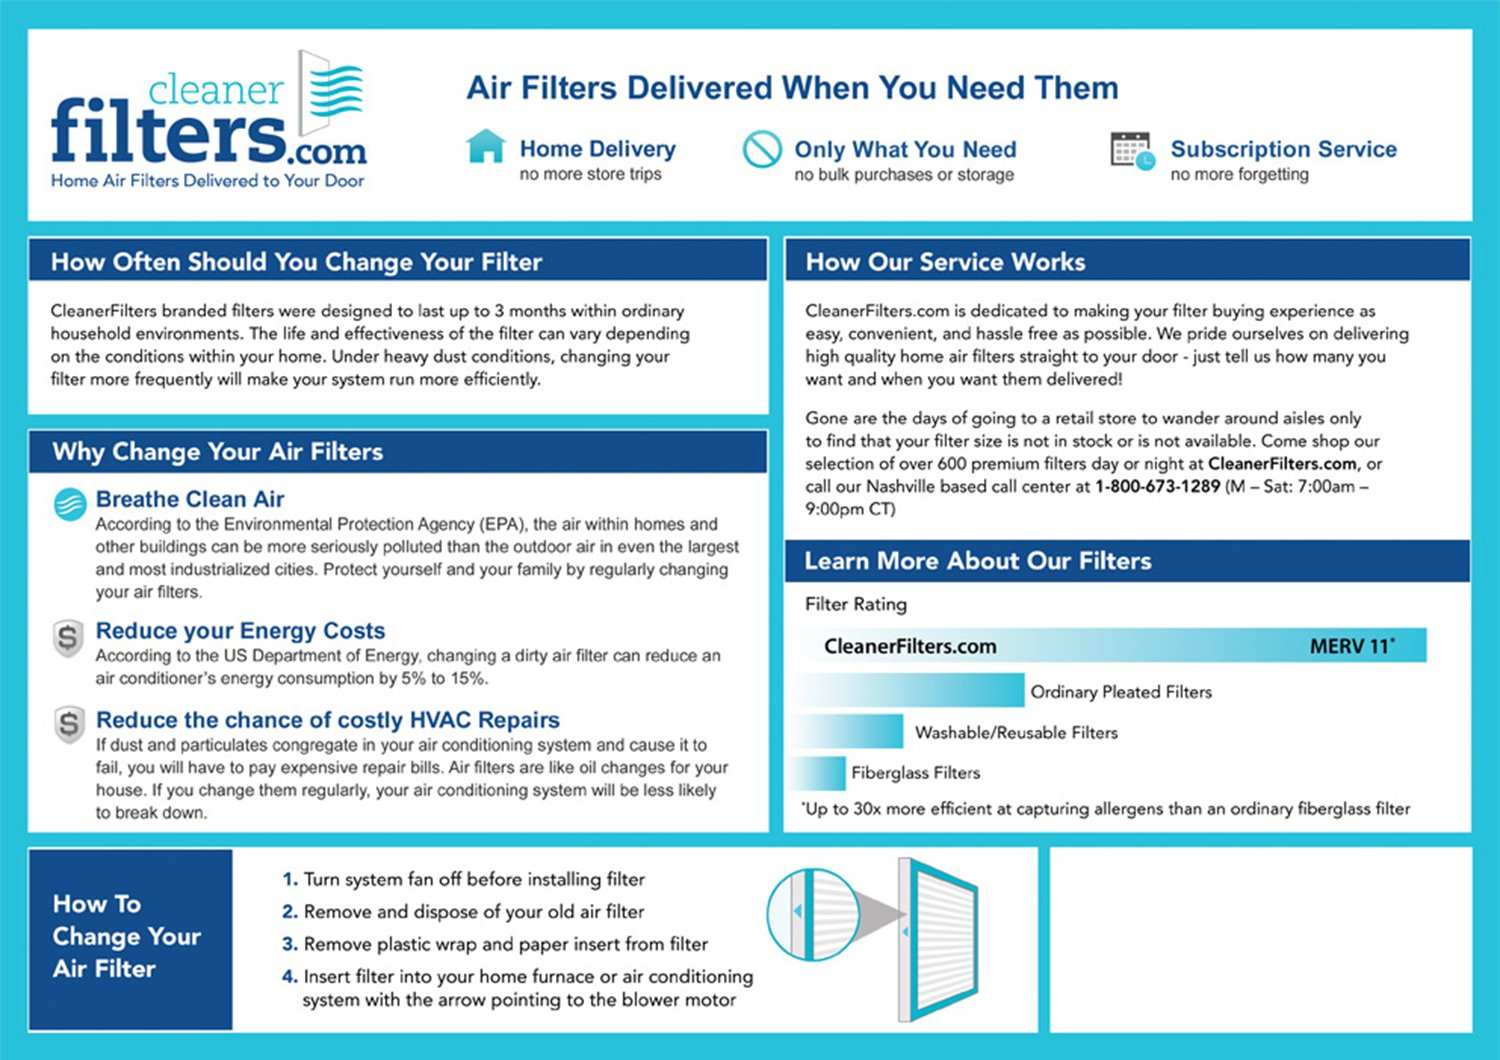 Best furnace air filters for allergies - Amazon Com Cleaner Filters 12x12x1 Air Filter Pleated High Efficiency Allergy Furnace Filters For Home Or Office With Merv 11 Rating 1 Pack Home